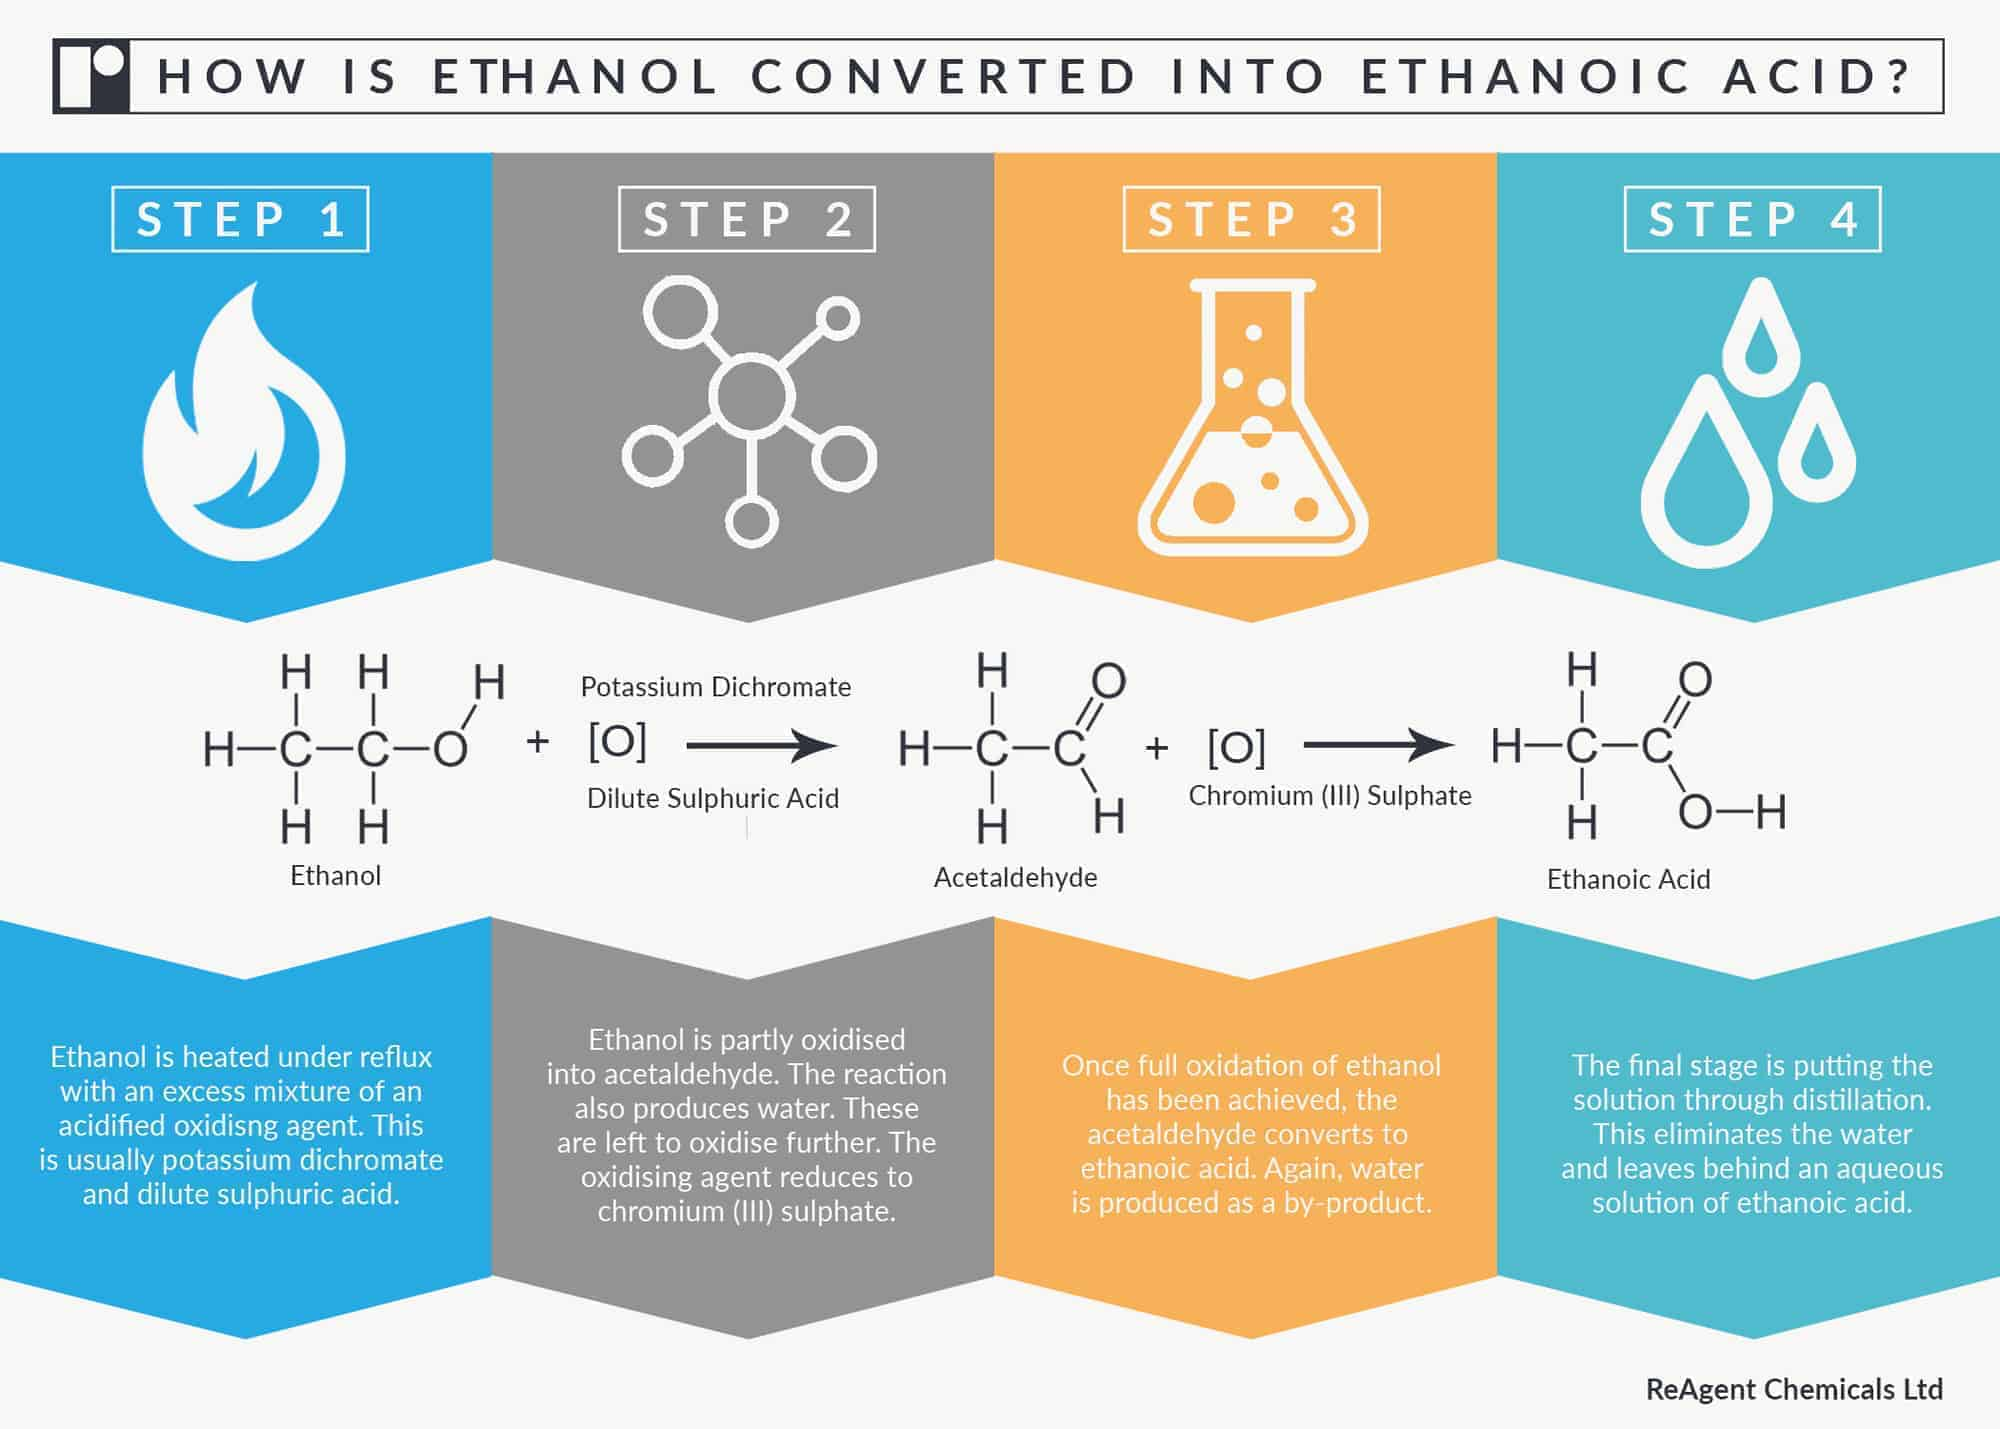 Ethanoic Acid Process - How is Ethanol Converted into Ethanoic Acid?